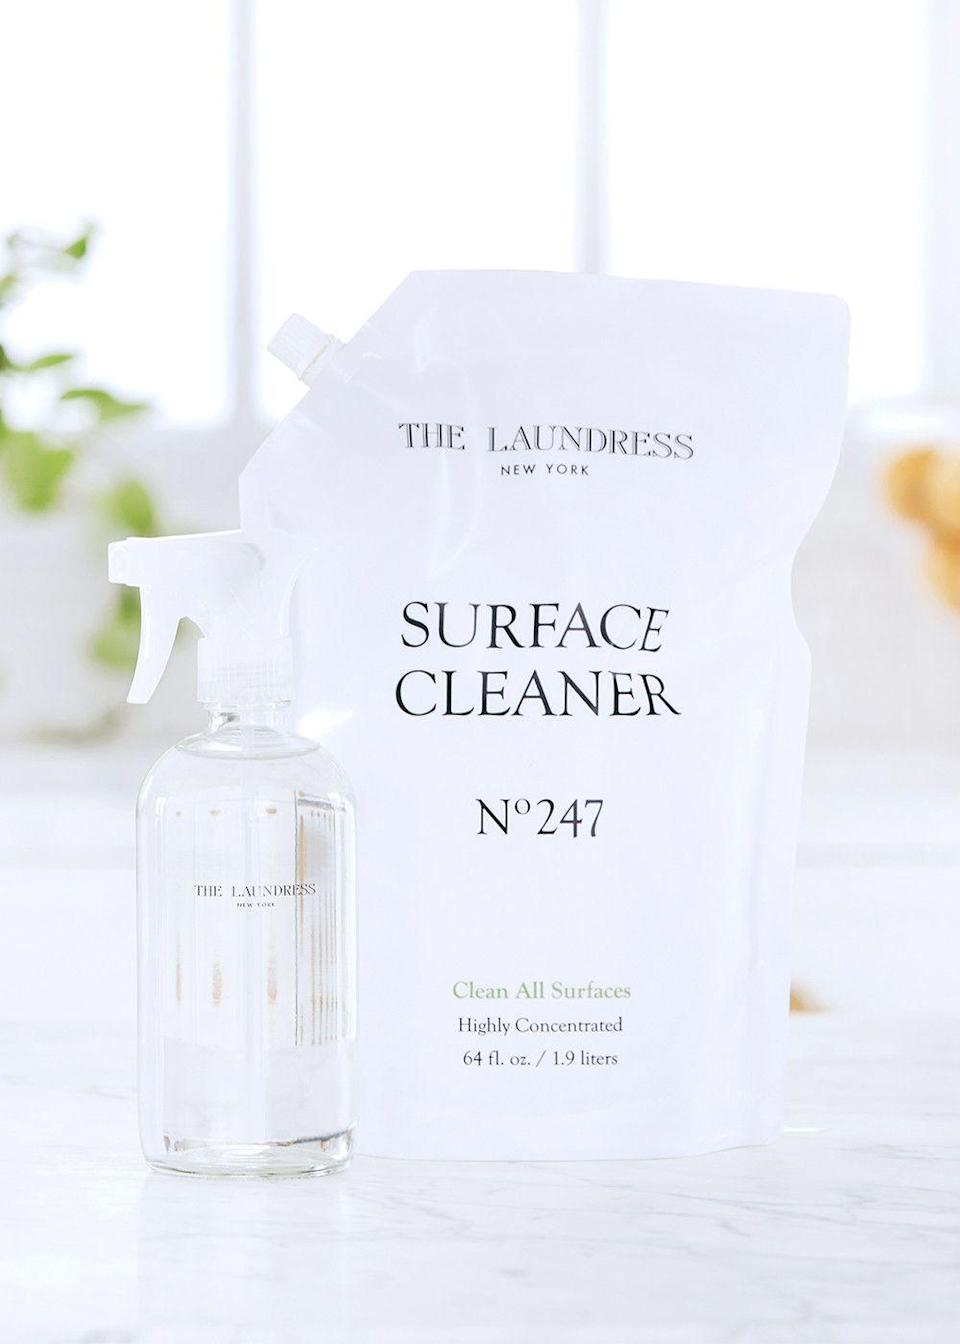 """<p><strong>The Laundress</strong></p><p>thelaundress.com</p><p><strong>$54.00</strong></p><p><a href=""""https://go.redirectingat.com?id=74968X1596630&url=https%3A%2F%2Fwww.thelaundress.com%2Fsurface-cleaner-refill-bundle.html%3FranMID%3D45148%26ranEAID%3D2116208%26ranSiteID%3DTnL5HPStwNw-wWluywJb2n3.QklkBuR.Xg&sref=https%3A%2F%2Fwww.townandcountrymag.com%2Fstyle%2Fg36132033%2Fthe-weekly-covet-april-16-2021%2F"""" rel=""""nofollow noopener"""" target=""""_blank"""" data-ylk=""""slk:Shop Now"""" class=""""link rapid-noclick-resp"""">Shop Now</a></p><p>""""I'm always looking for ways to reduce my consumption of products that have single-use plastic components. An area where I previously struggled, of course, was cleaning products. Now my favorite home cleaning products come in bags with environmentally-friendlier impact so I can refill my glass cleaning bottles and reduce the amount of plastic I toss into the recycling every month.""""—<em>Roxanne Adamiyatt, Senior Digital Editor </em></p>"""